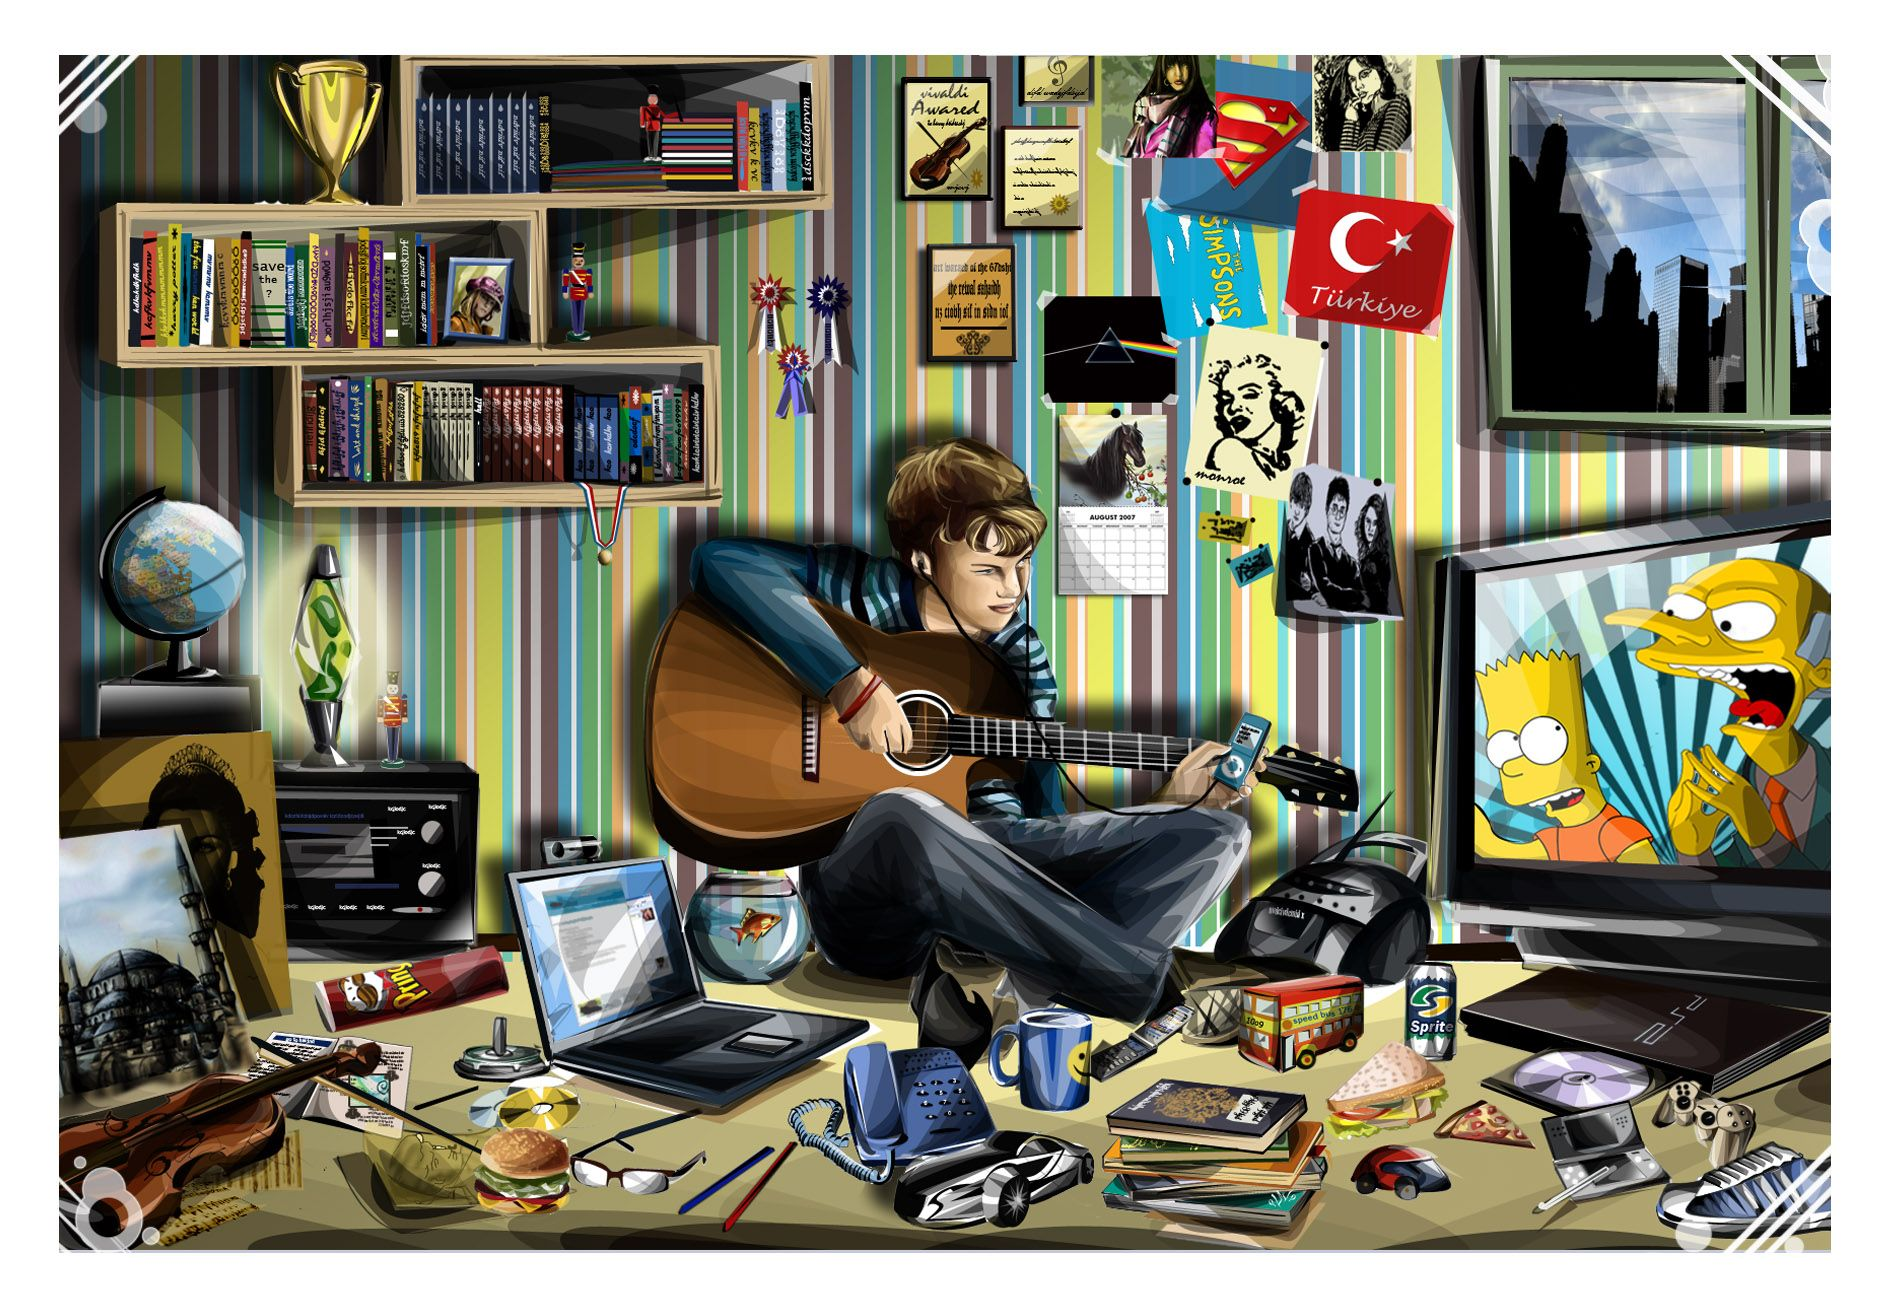 Image result for cartoon images of guy in a messy room